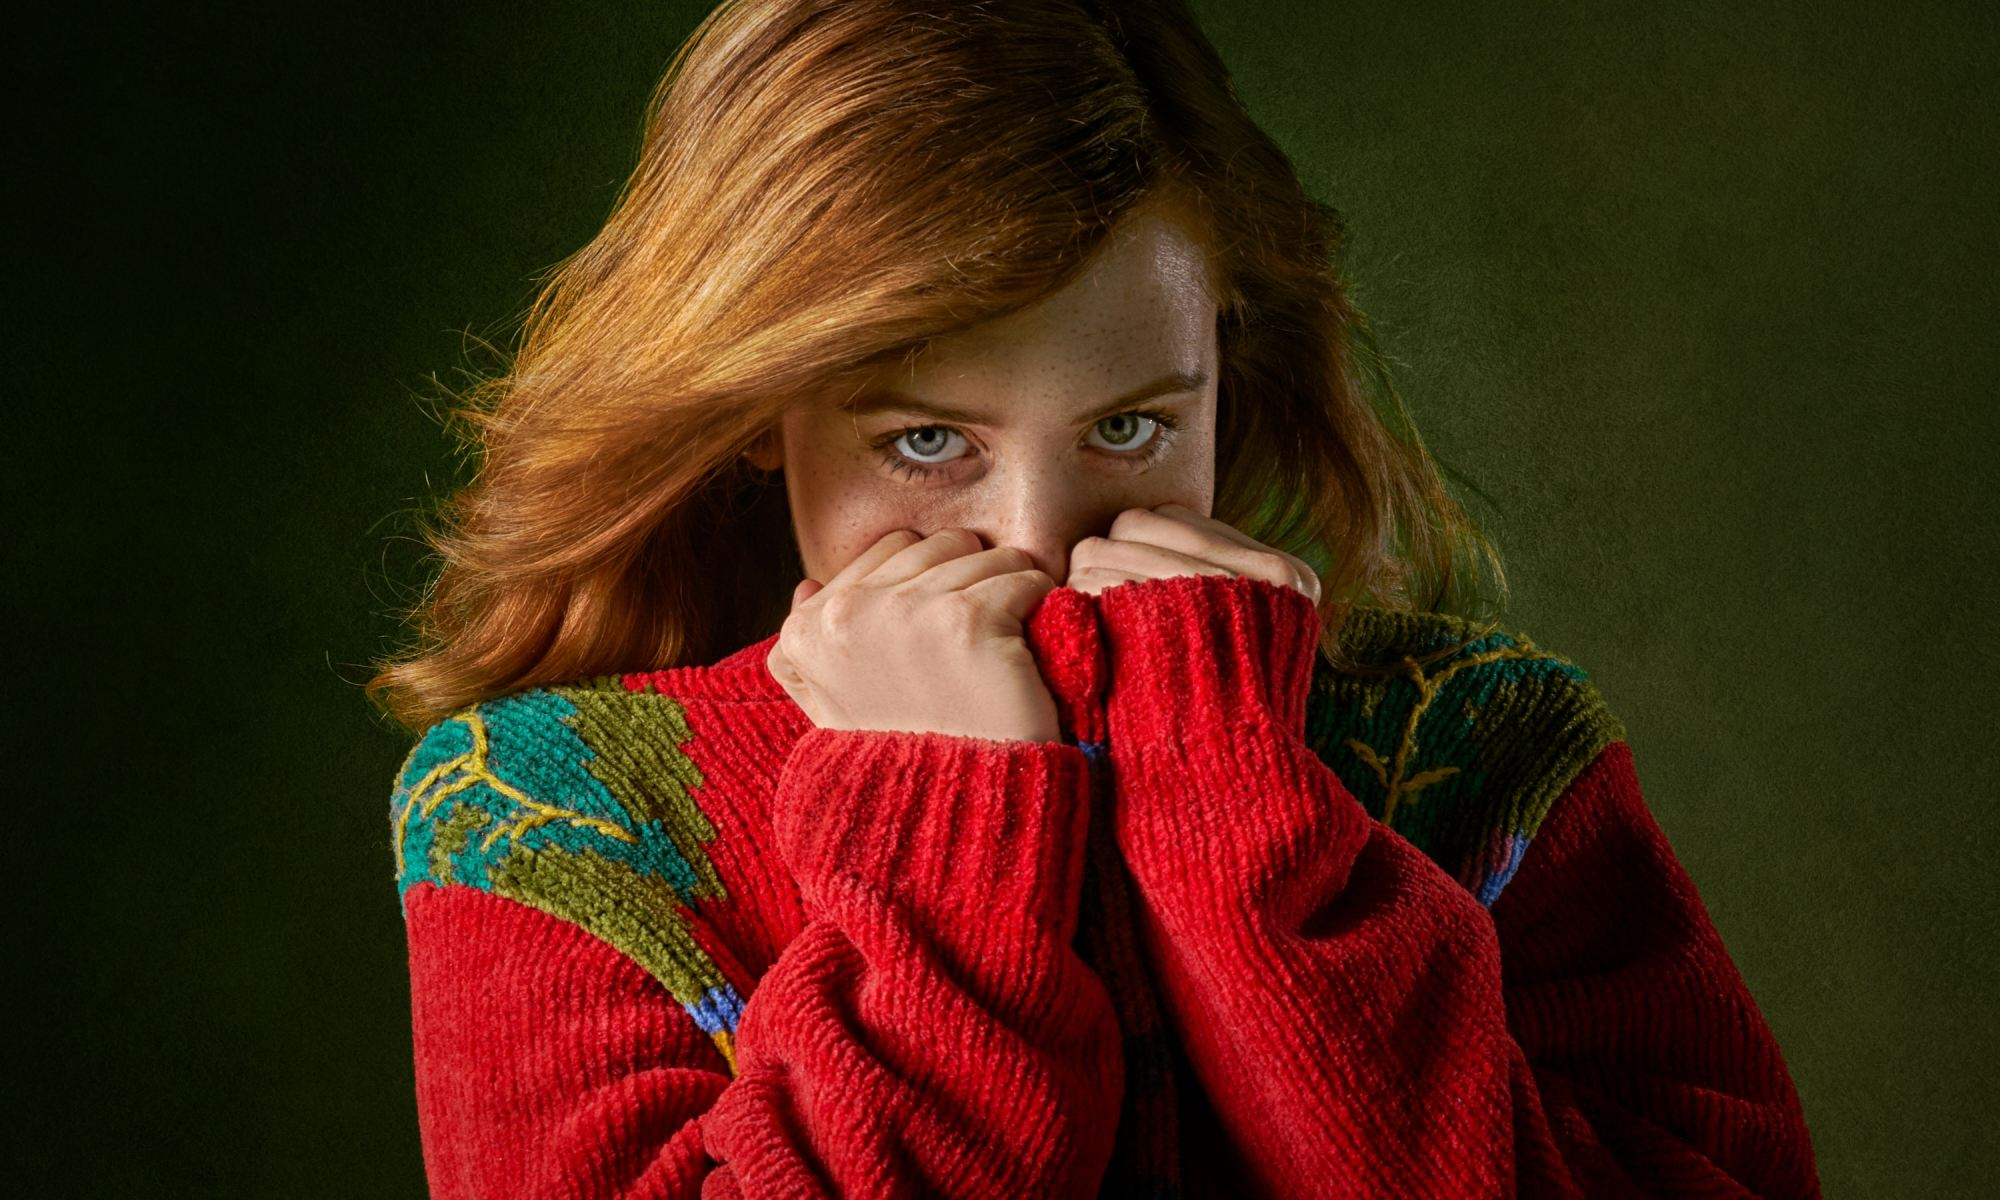 Shy redheaded woman covering up face with red sweater